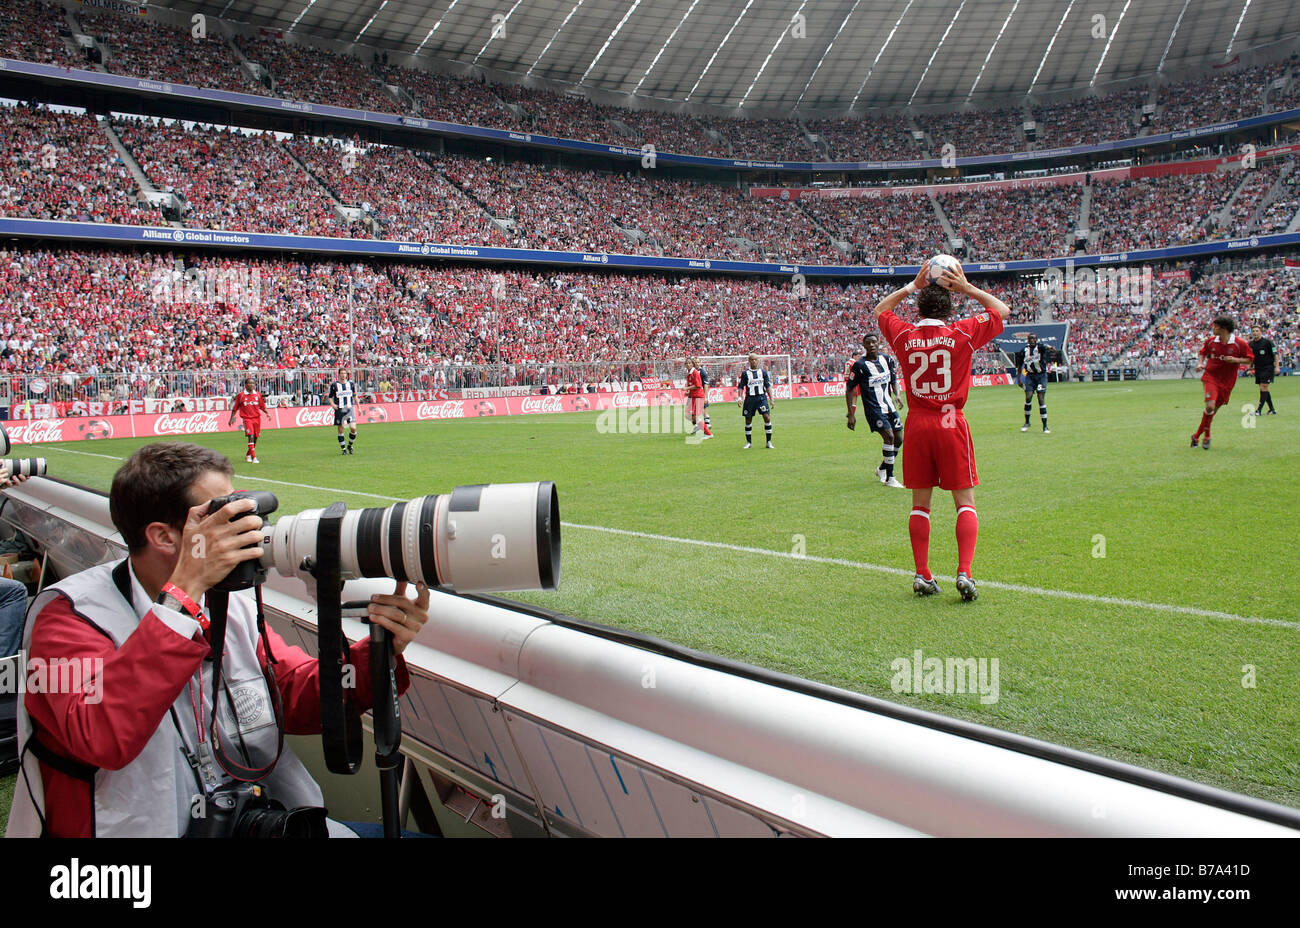 Photographer at an FC Bayern Muenchen soccer match in the Allianz-Arena, 27.08.2005, Munich, Bavaria, Germany Stock Photo